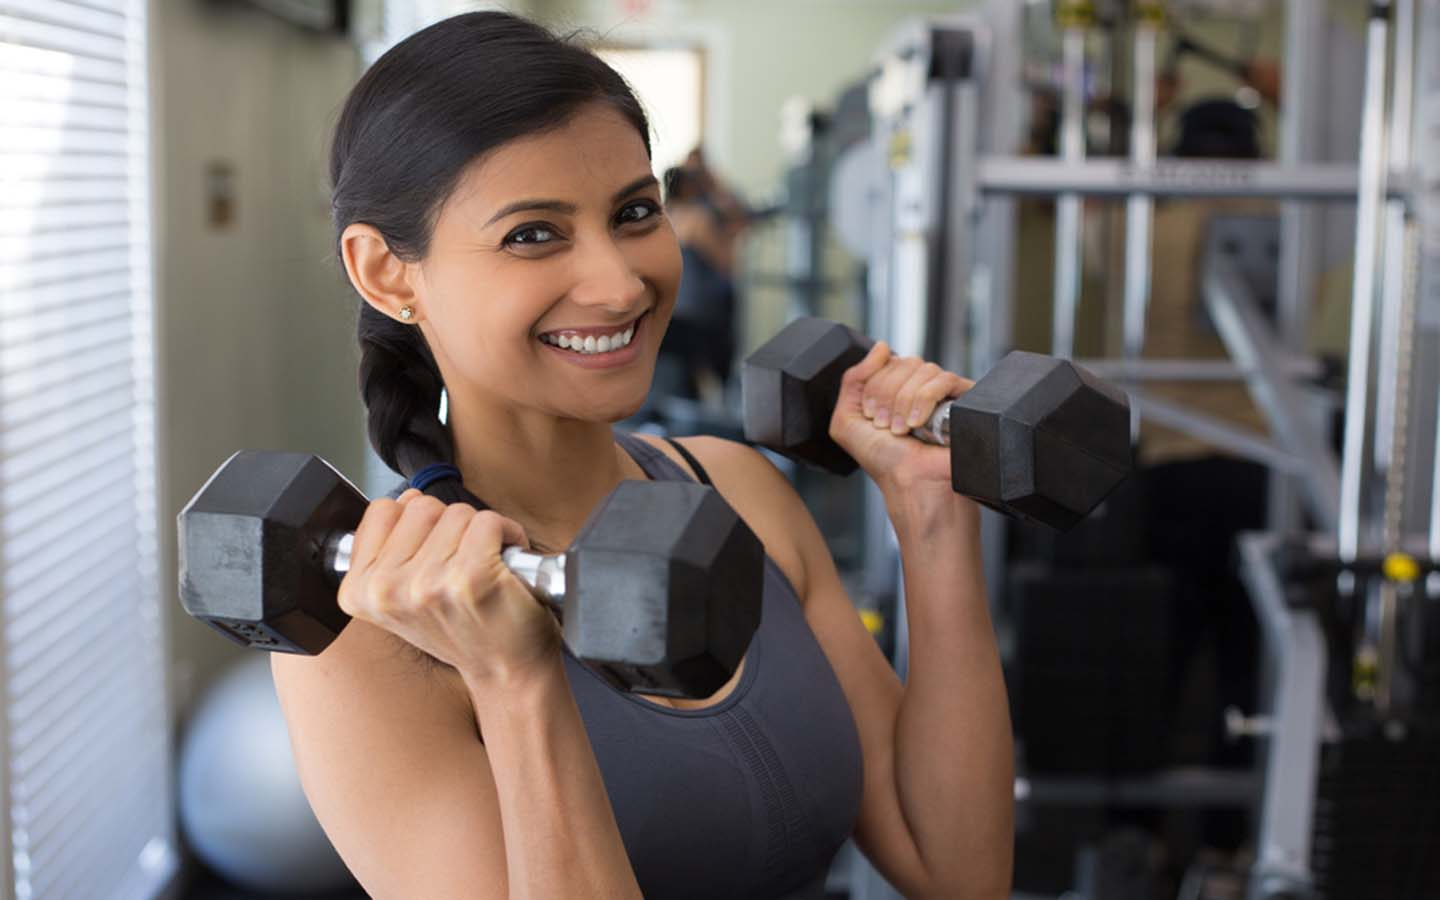 Athletic woman holding free weights